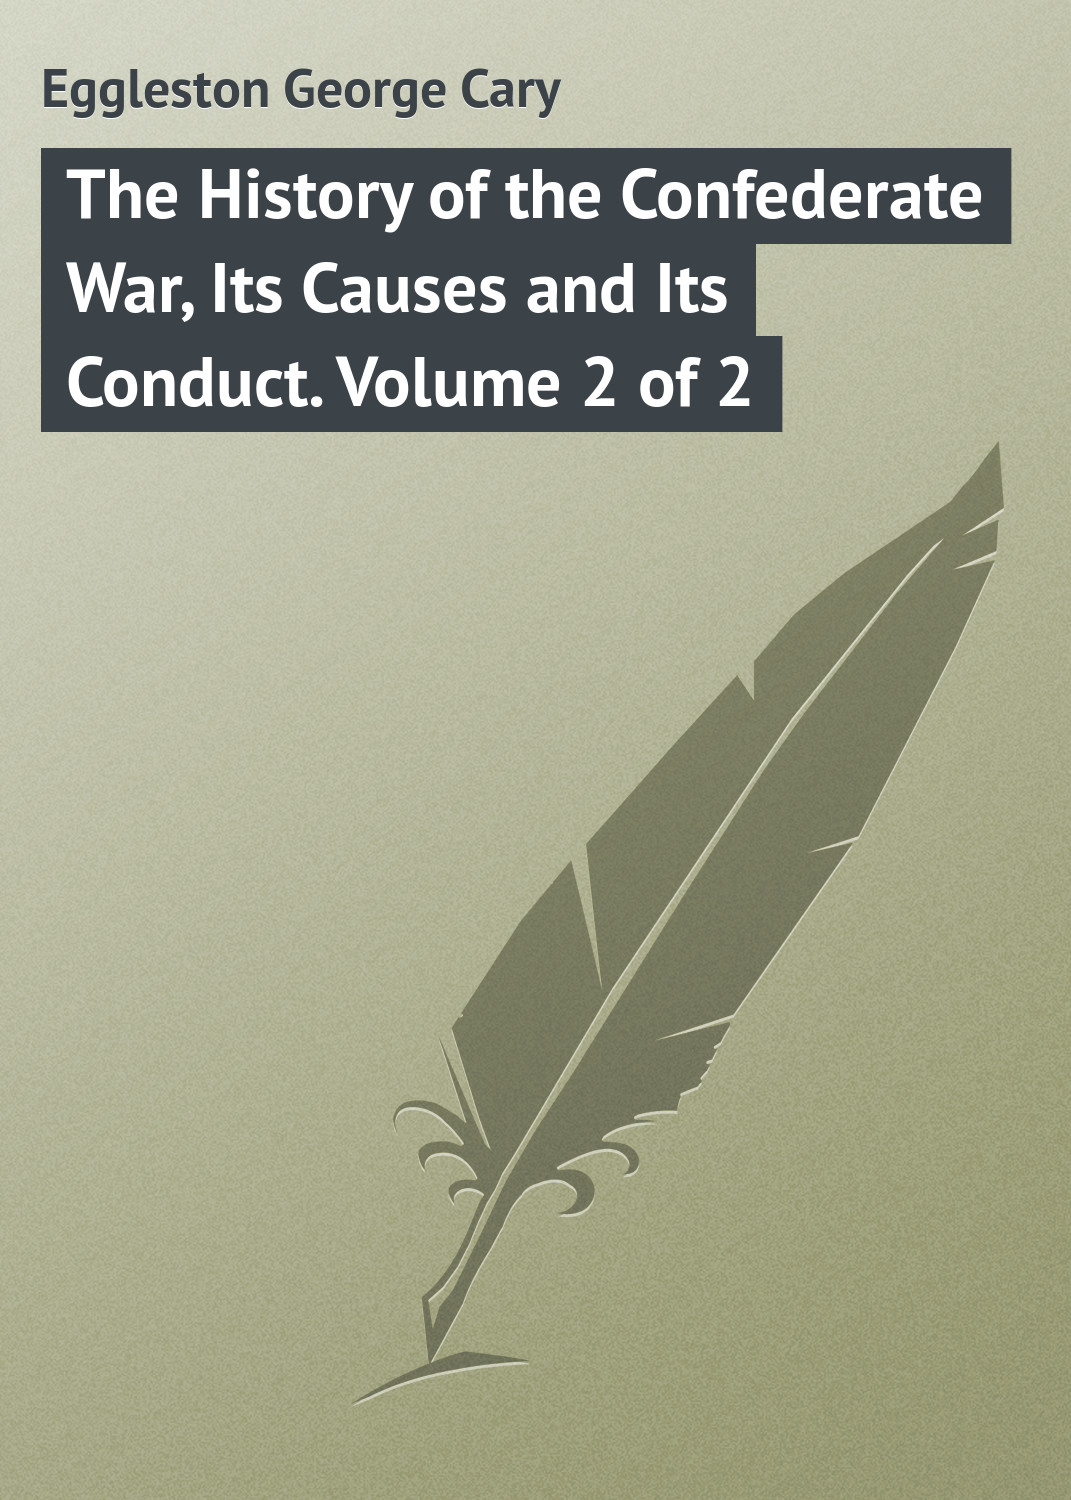 The History of the Confederate War, Its Causes and Its Conduct. Volume 2 of 2